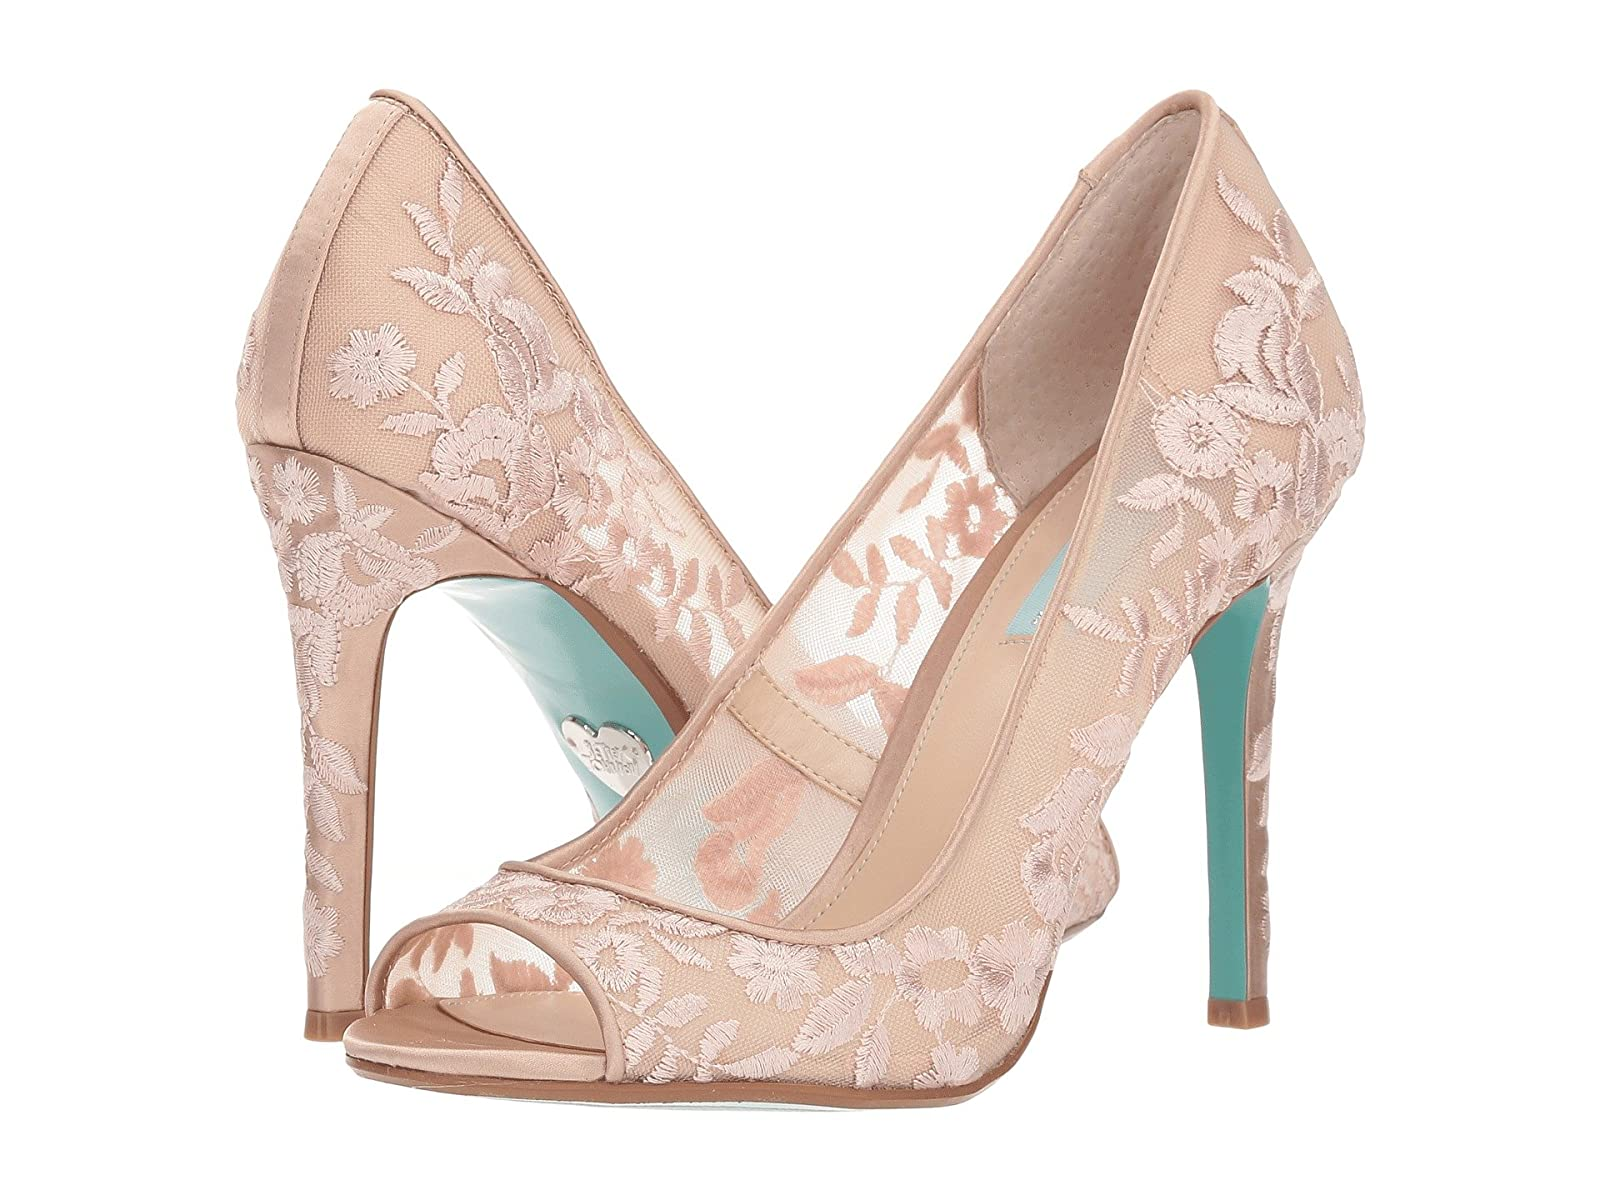 Blue by Betsey Johnson AdleyAtmospheric grades have affordable shoes